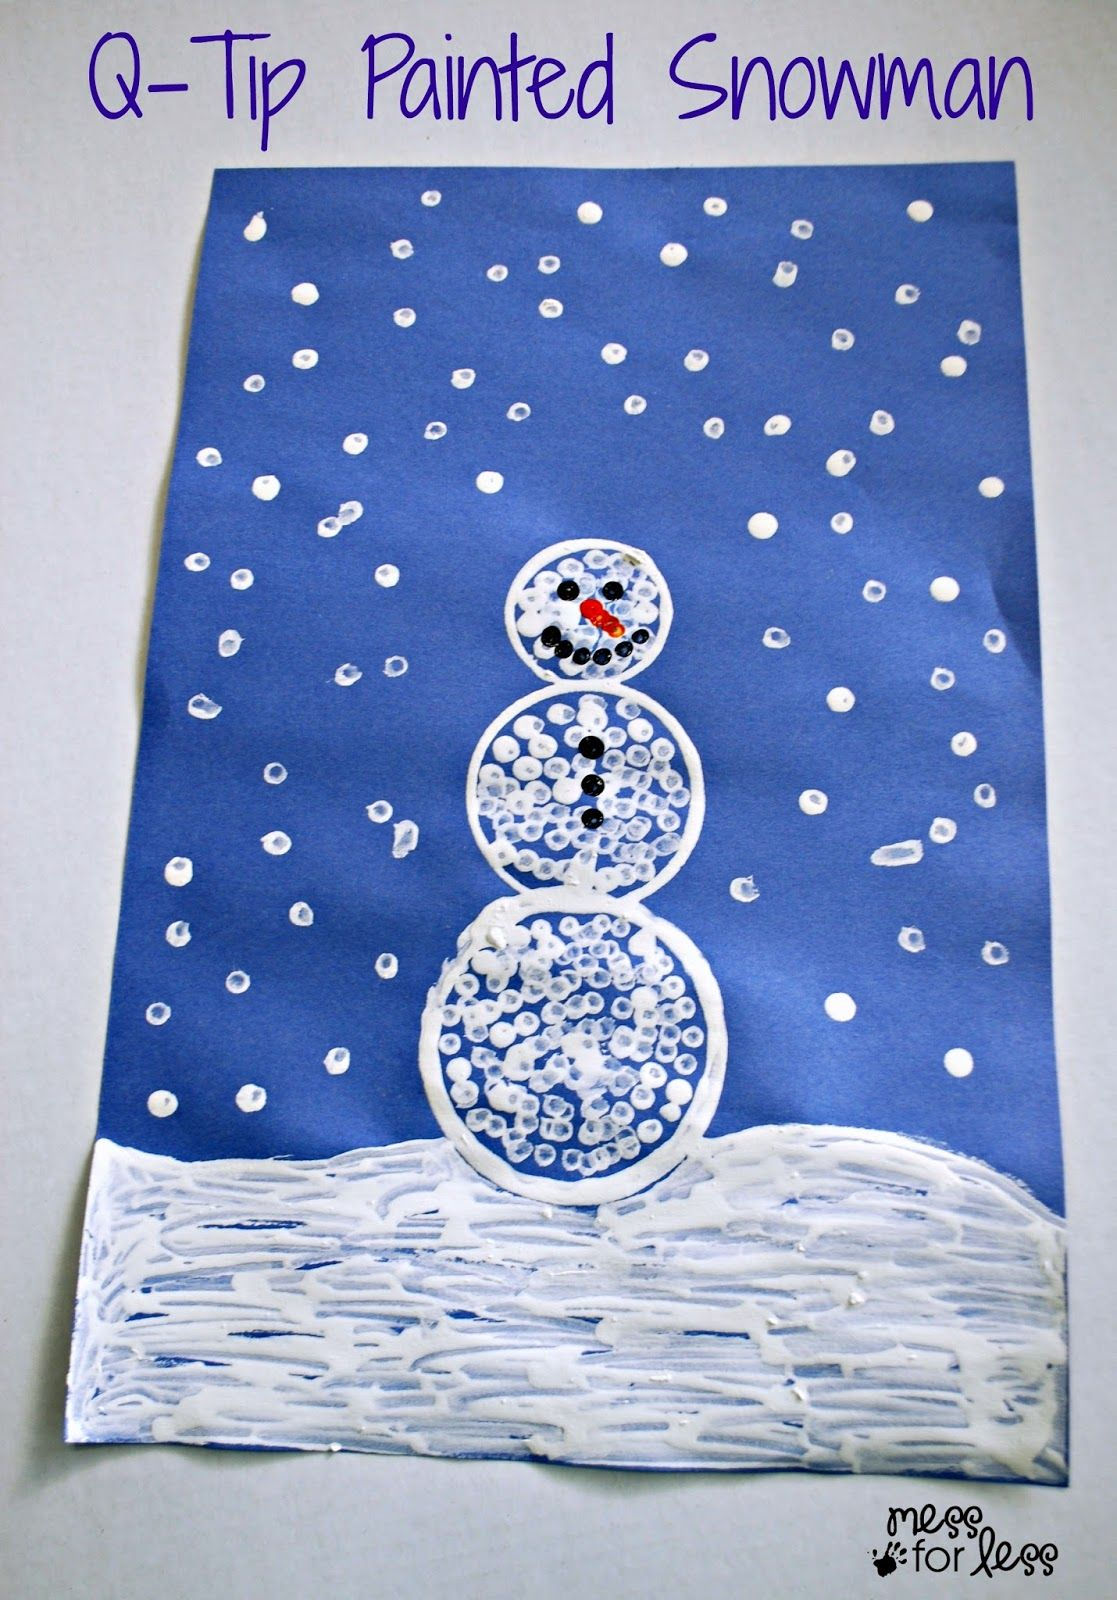 q tip painted snowman craft - Free Painting Games For Preschoolers